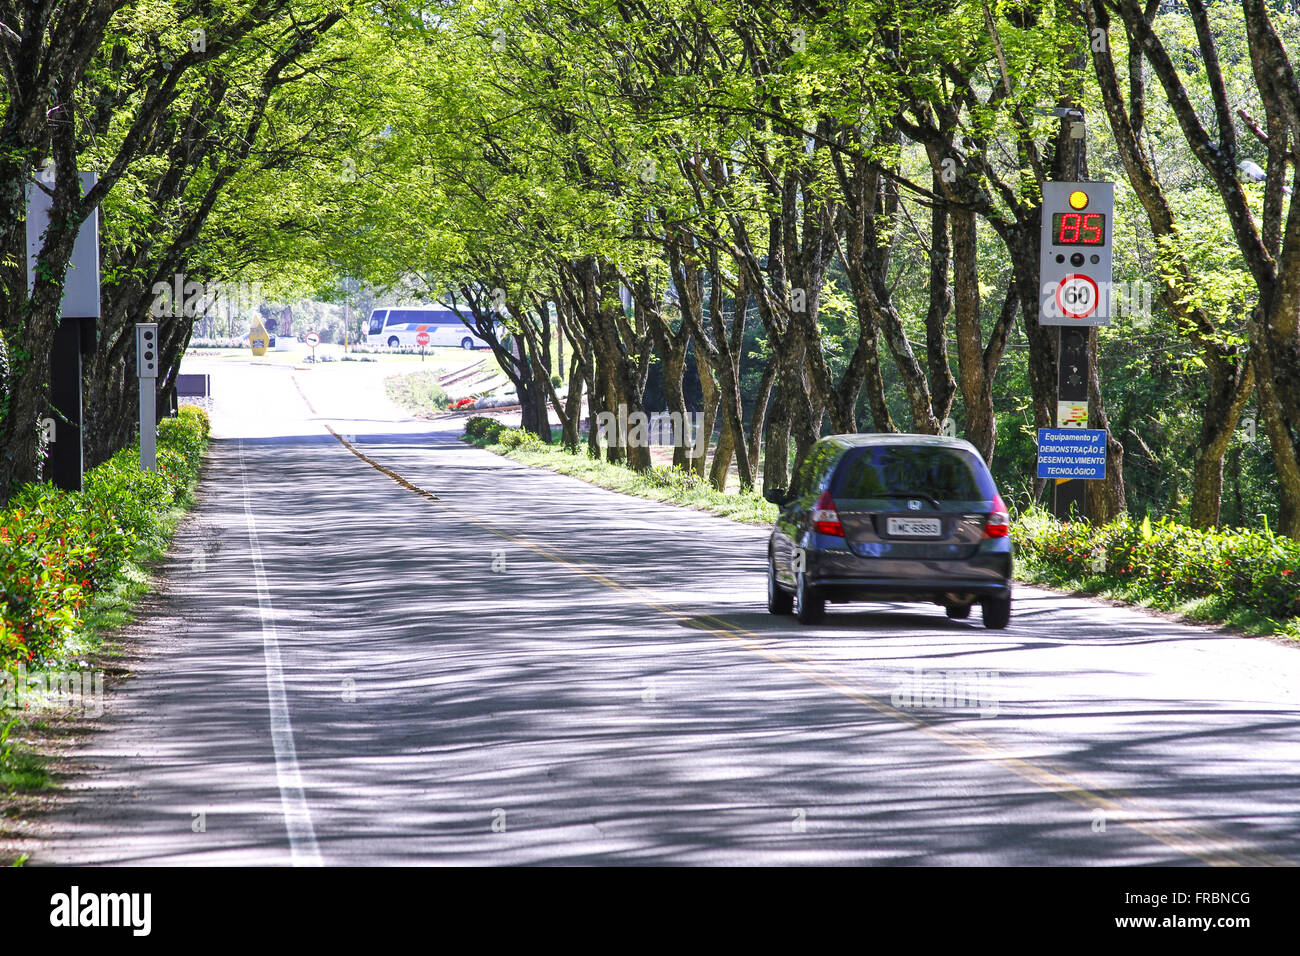 Electronic detection of radar speed access route to city - Stock Image